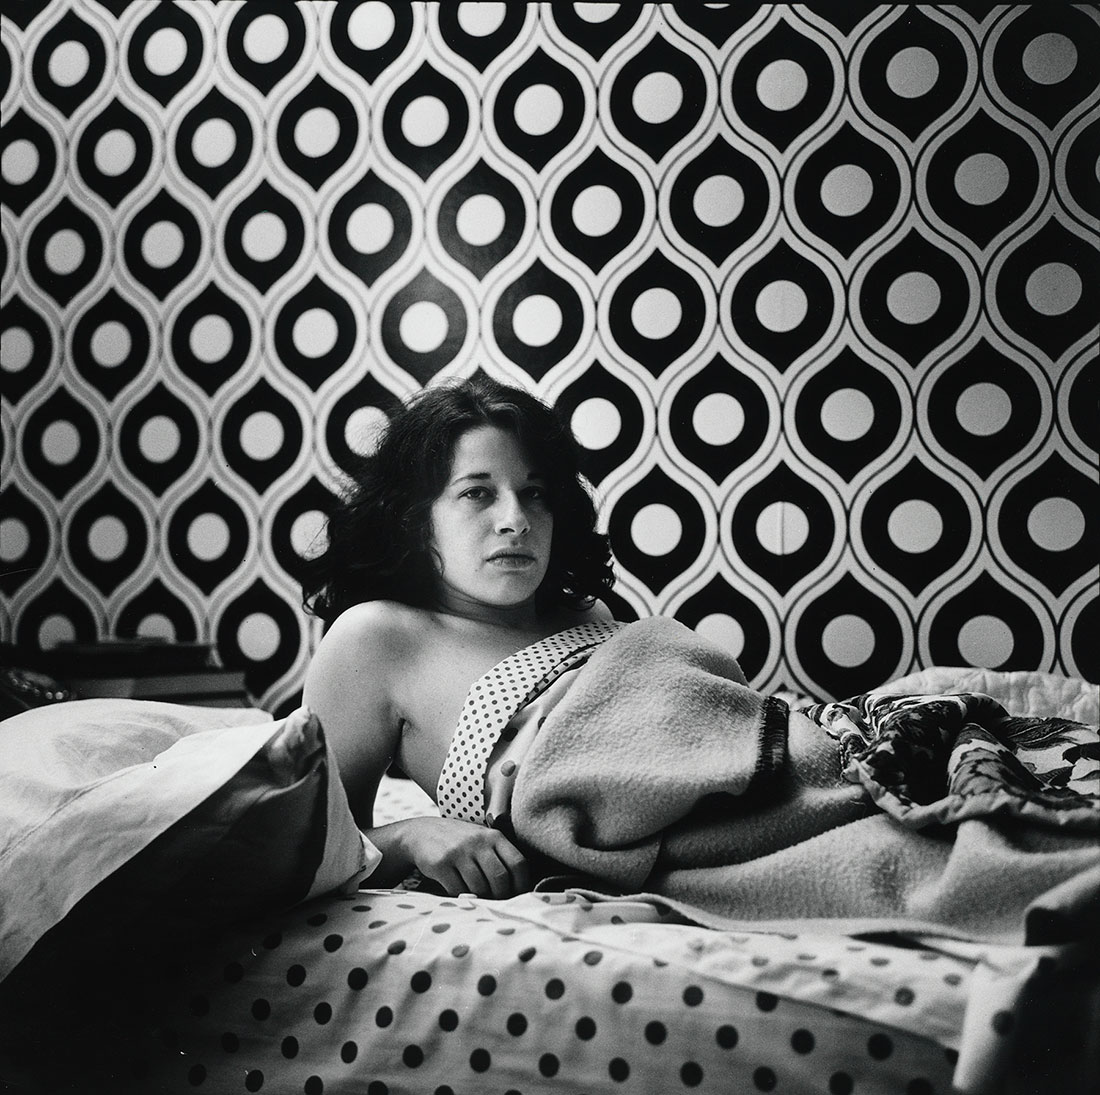 Fran Lebowitz at Home in Morristown, New Jersey<br />1974<br />Peter Hujar<br />Tirage gélatino-argentique, The Morgan Library & Museum, achat en 2013 grâce au Charina Endowment Fund<br />© Peter Hujar Archive, LLC, courtesy Pace/MacGill Gallery, New York and Fraenkel Gallery, San Francisco.